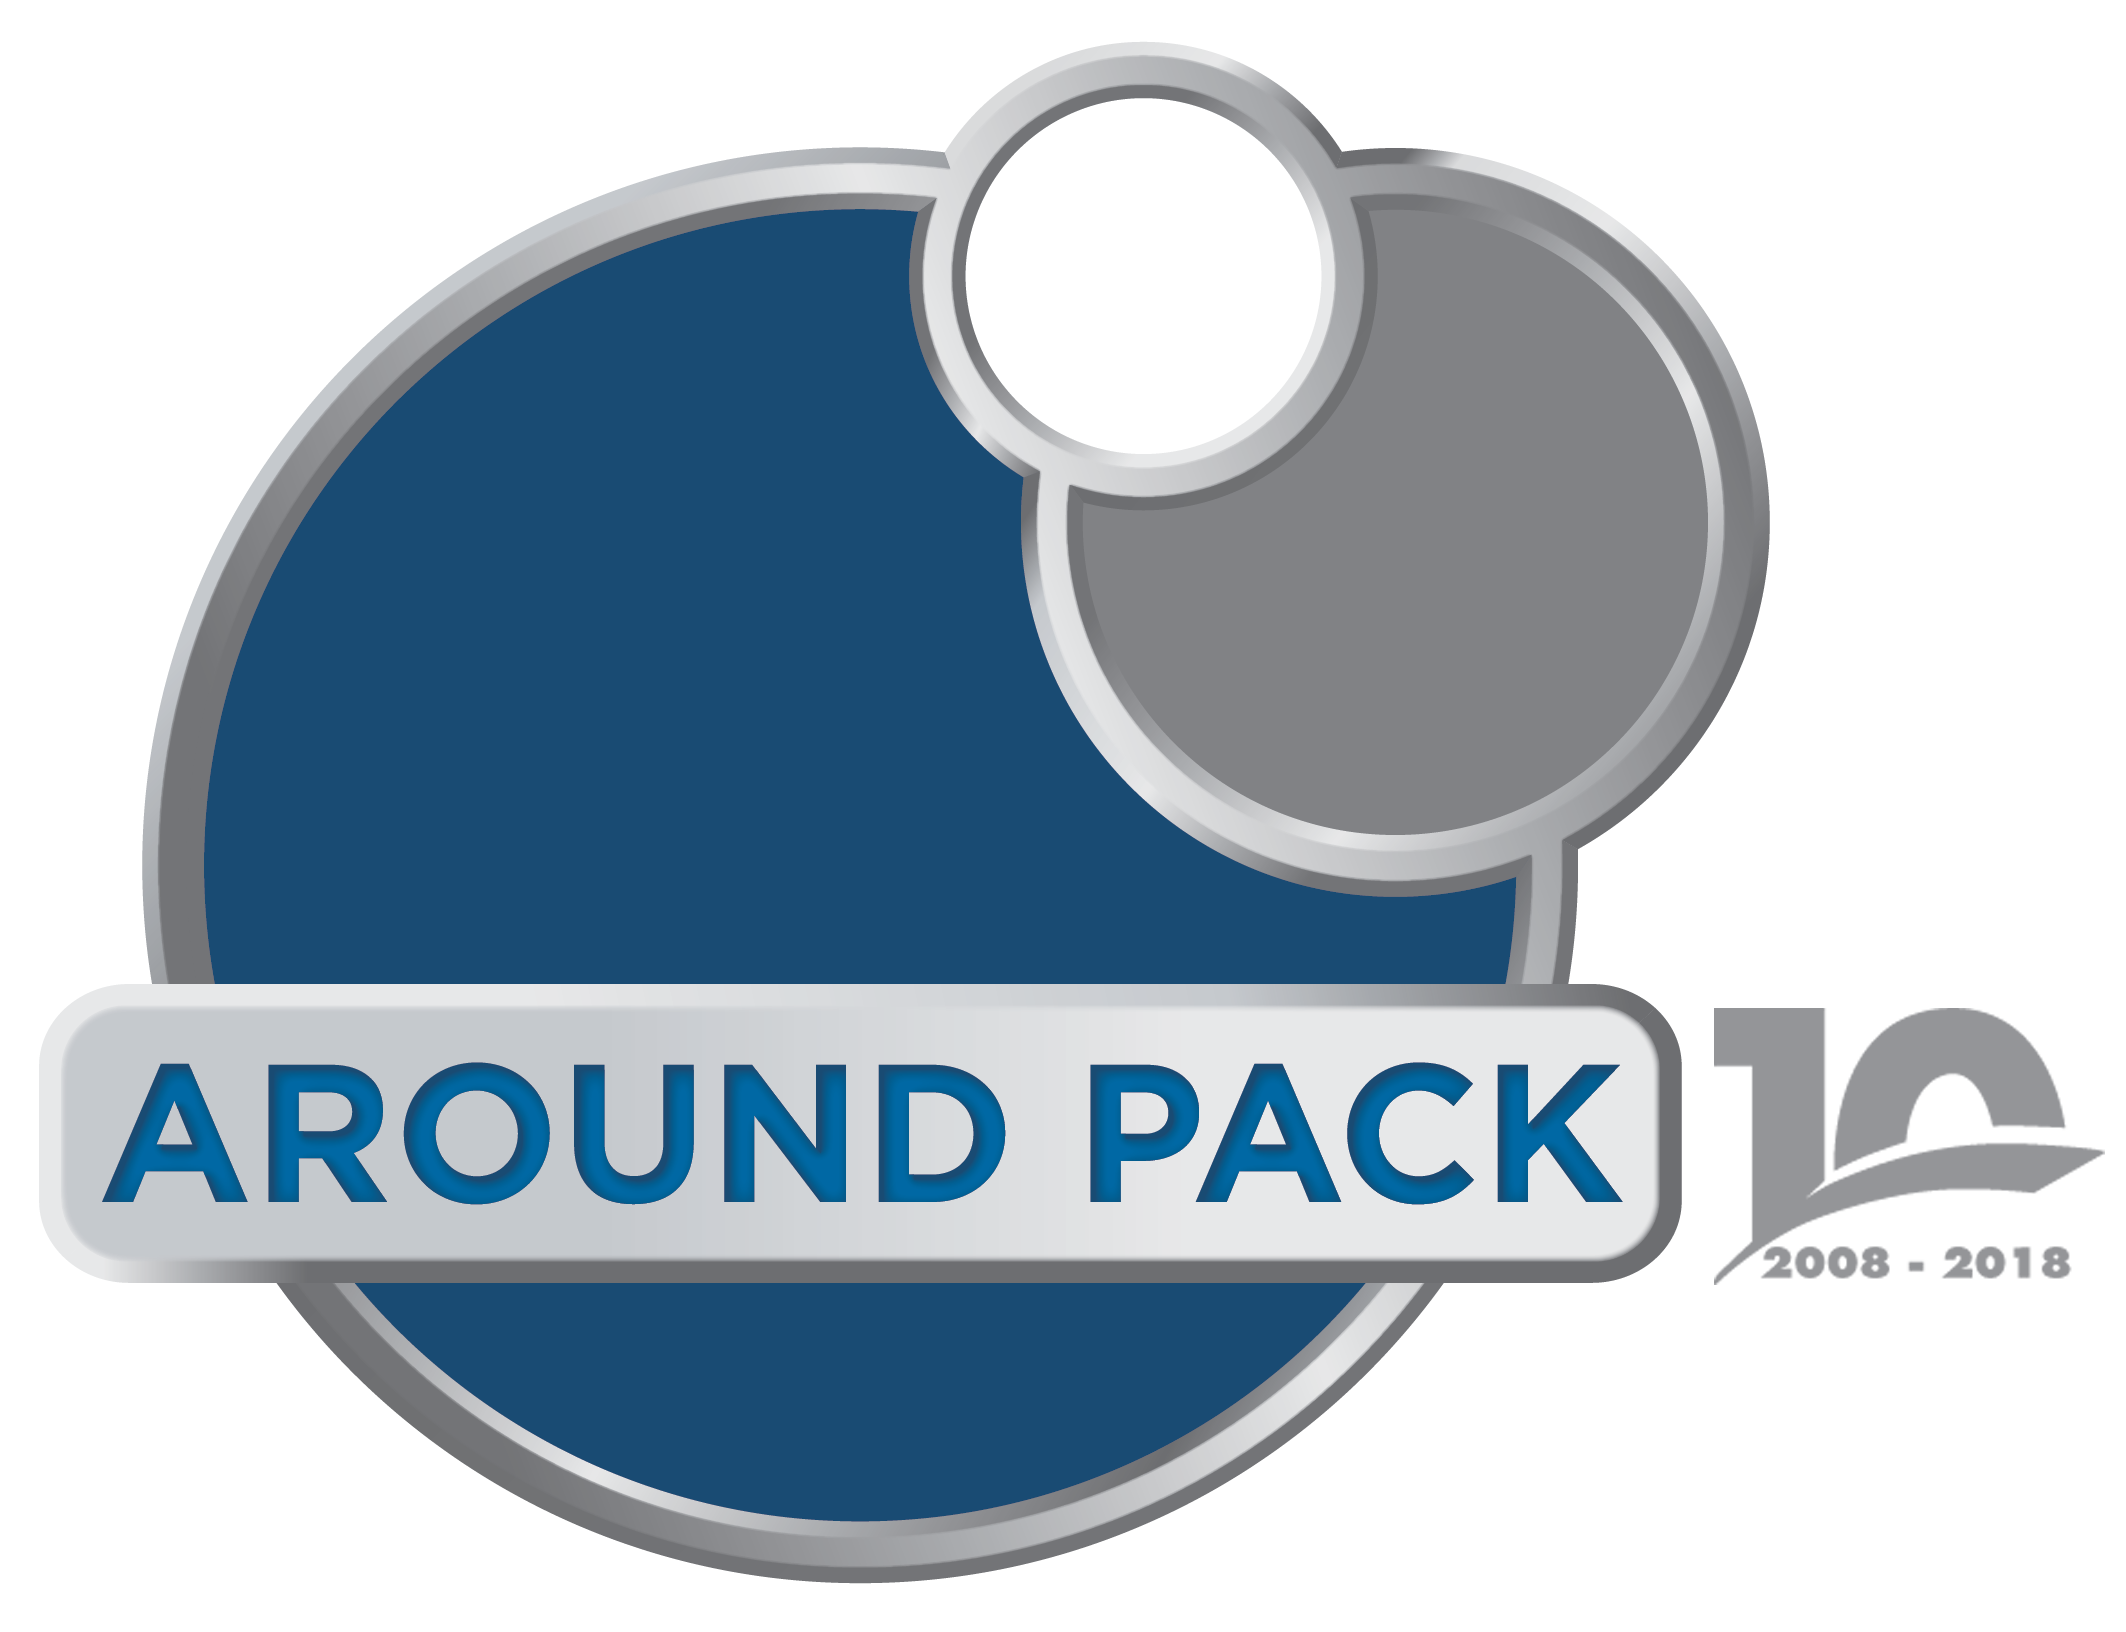 AROUND-PAck_logo_r410